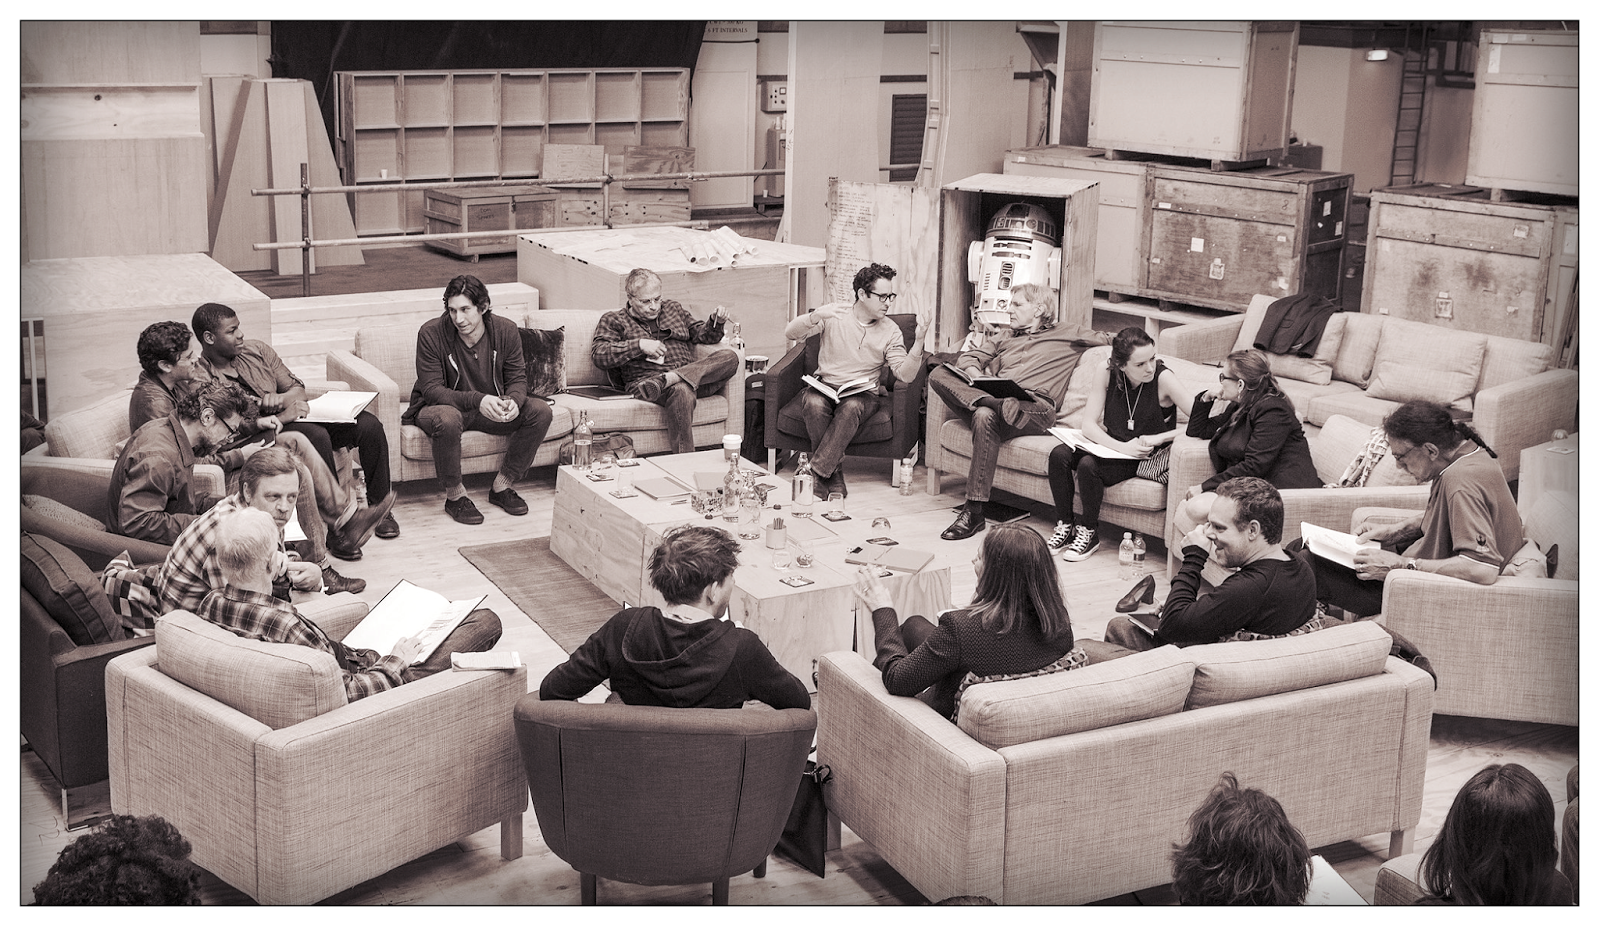 April 29th, Pinewood Studios, UK - Writer/Director/Producer J.J Abrams (top center right) at the cast read-through of Star Wars Episode VII at Pinewood Studios with (clockwise from right) Harrison Ford, Daisy Ridley, Carrie Fisher, Peter Mayhew, Producer Bryan Burk, Lucasfilm President and Producer Kathleen Kennedy, Domhnall Gleeson, Anthony Daniels, Mark Hamill, Andy Serkis, Oscar Isaac, John Boyega, Adam Driver and Writer Lawrence Kasdan.